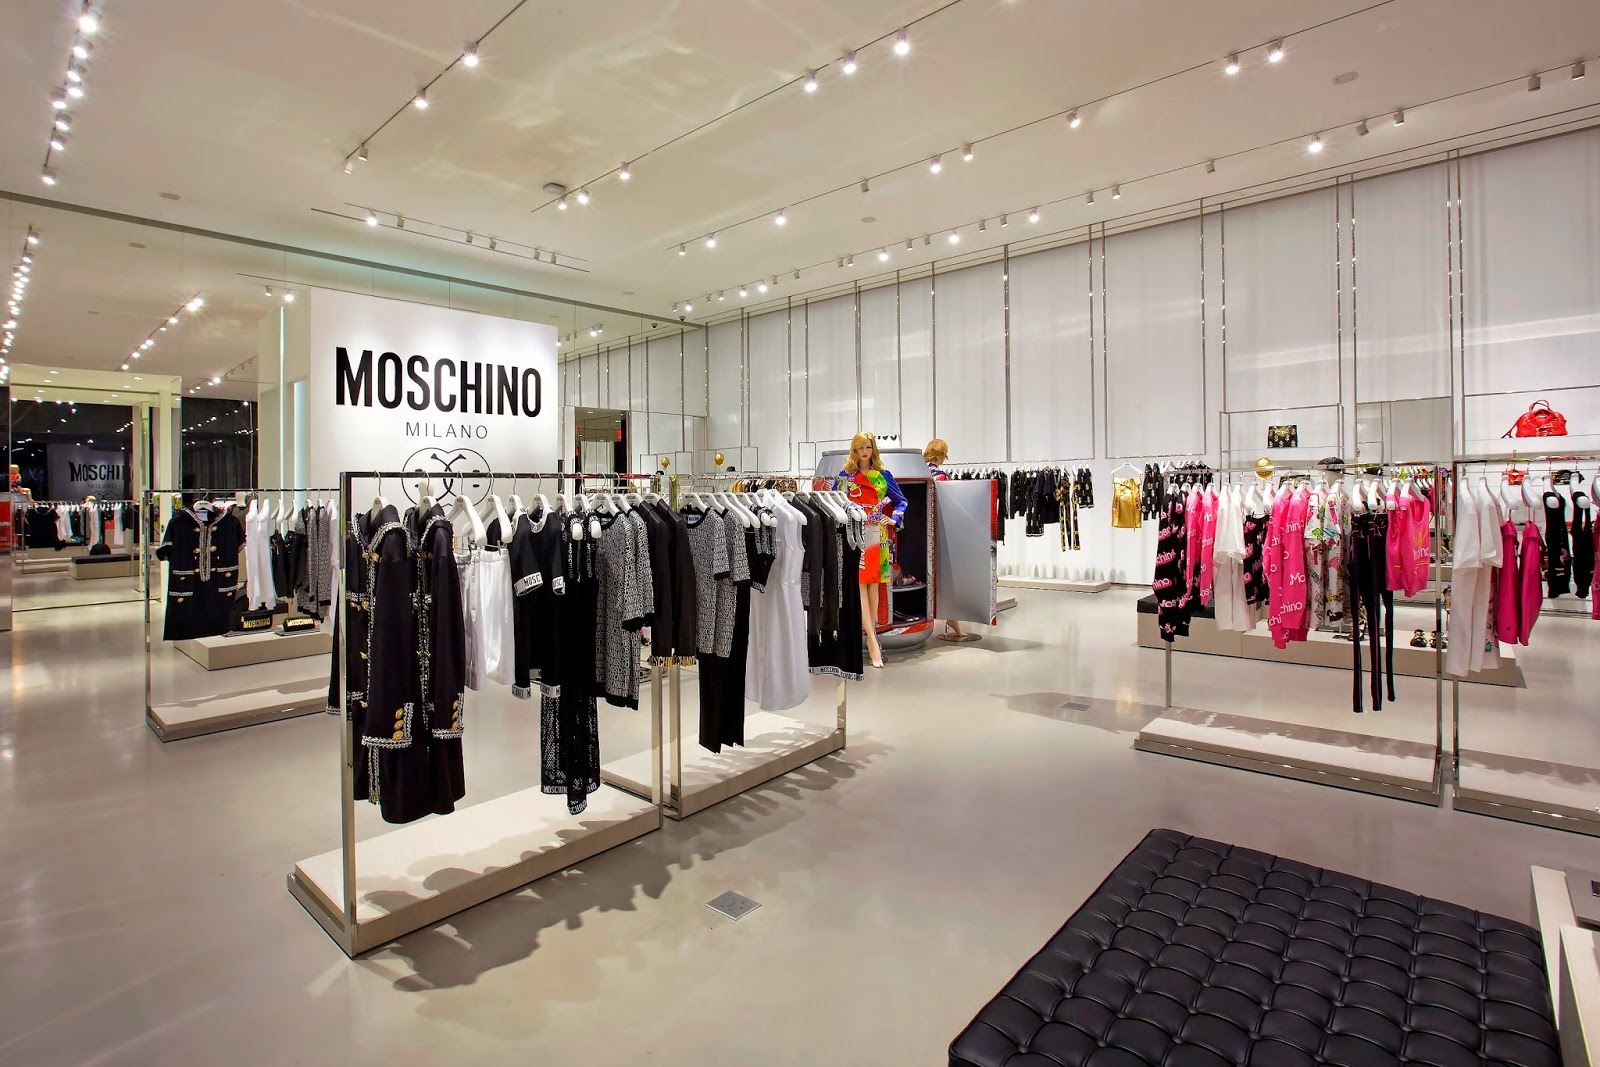 Moschino West Hollywood Clothing Racks